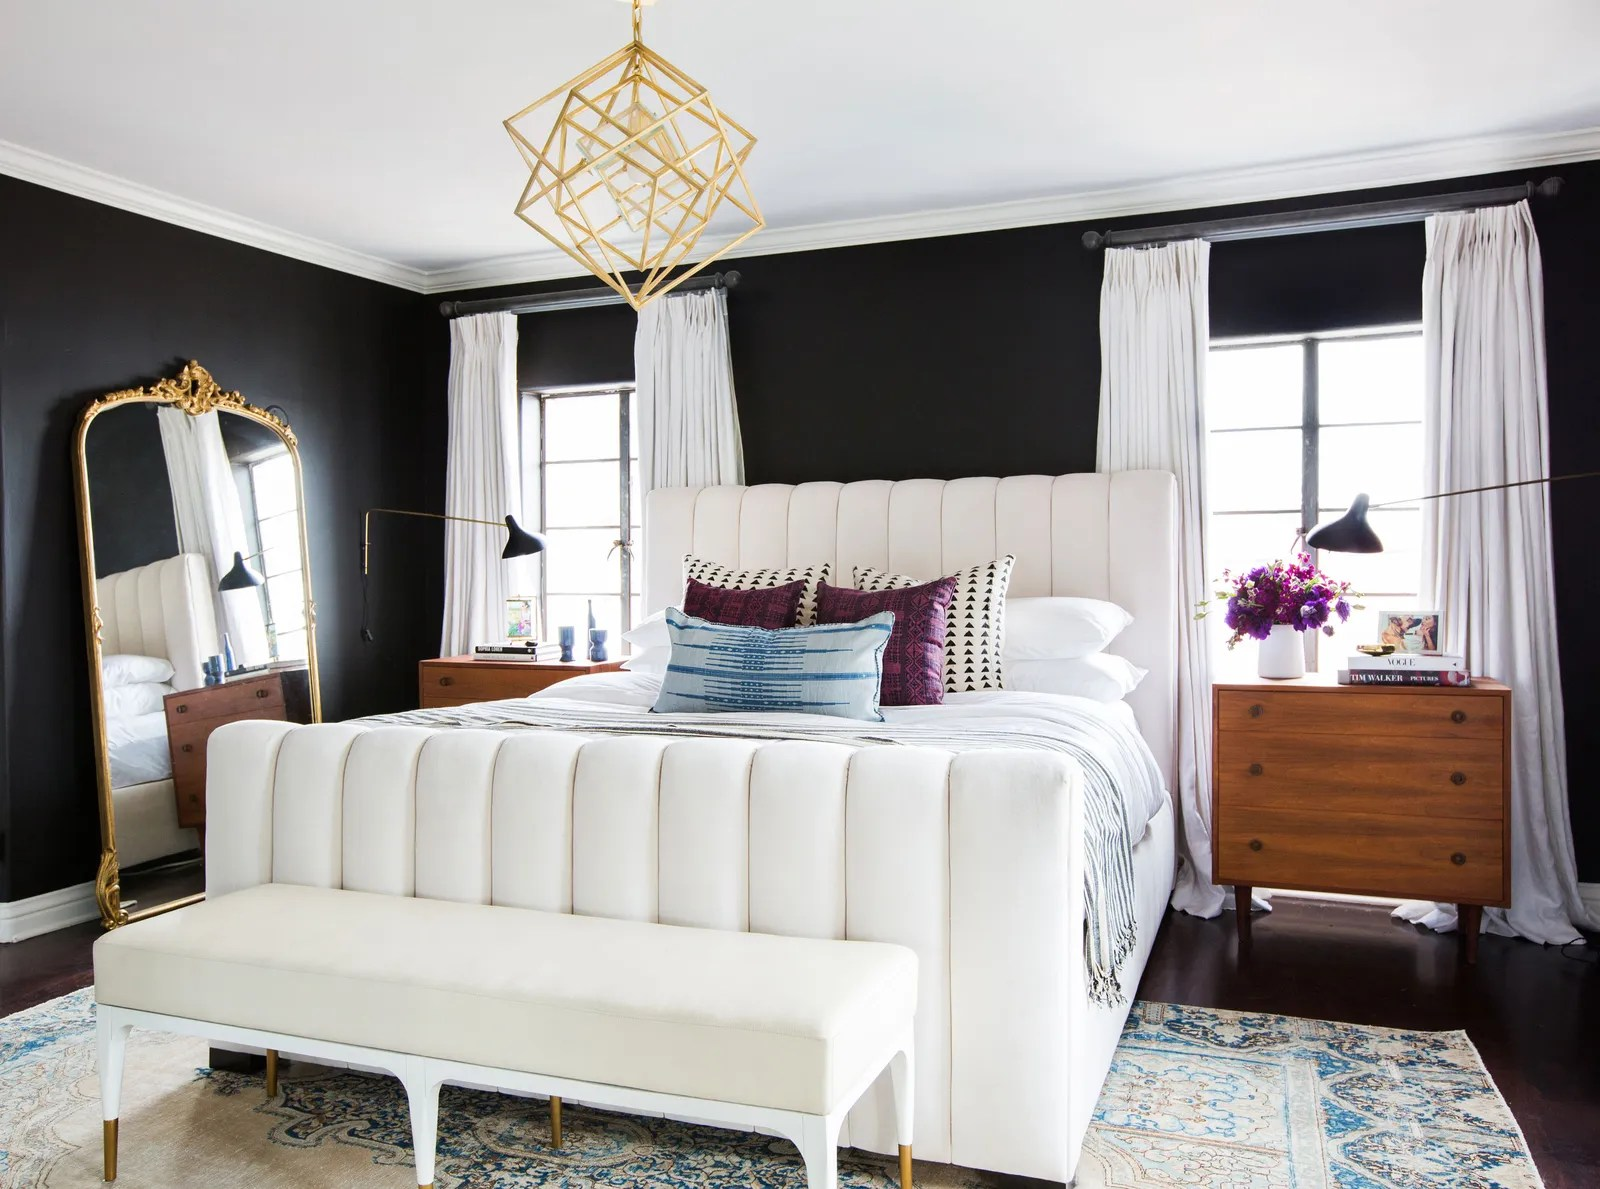 12 Master Bedroom Decorating Ideas and Design Inspiration  Architectural Digest